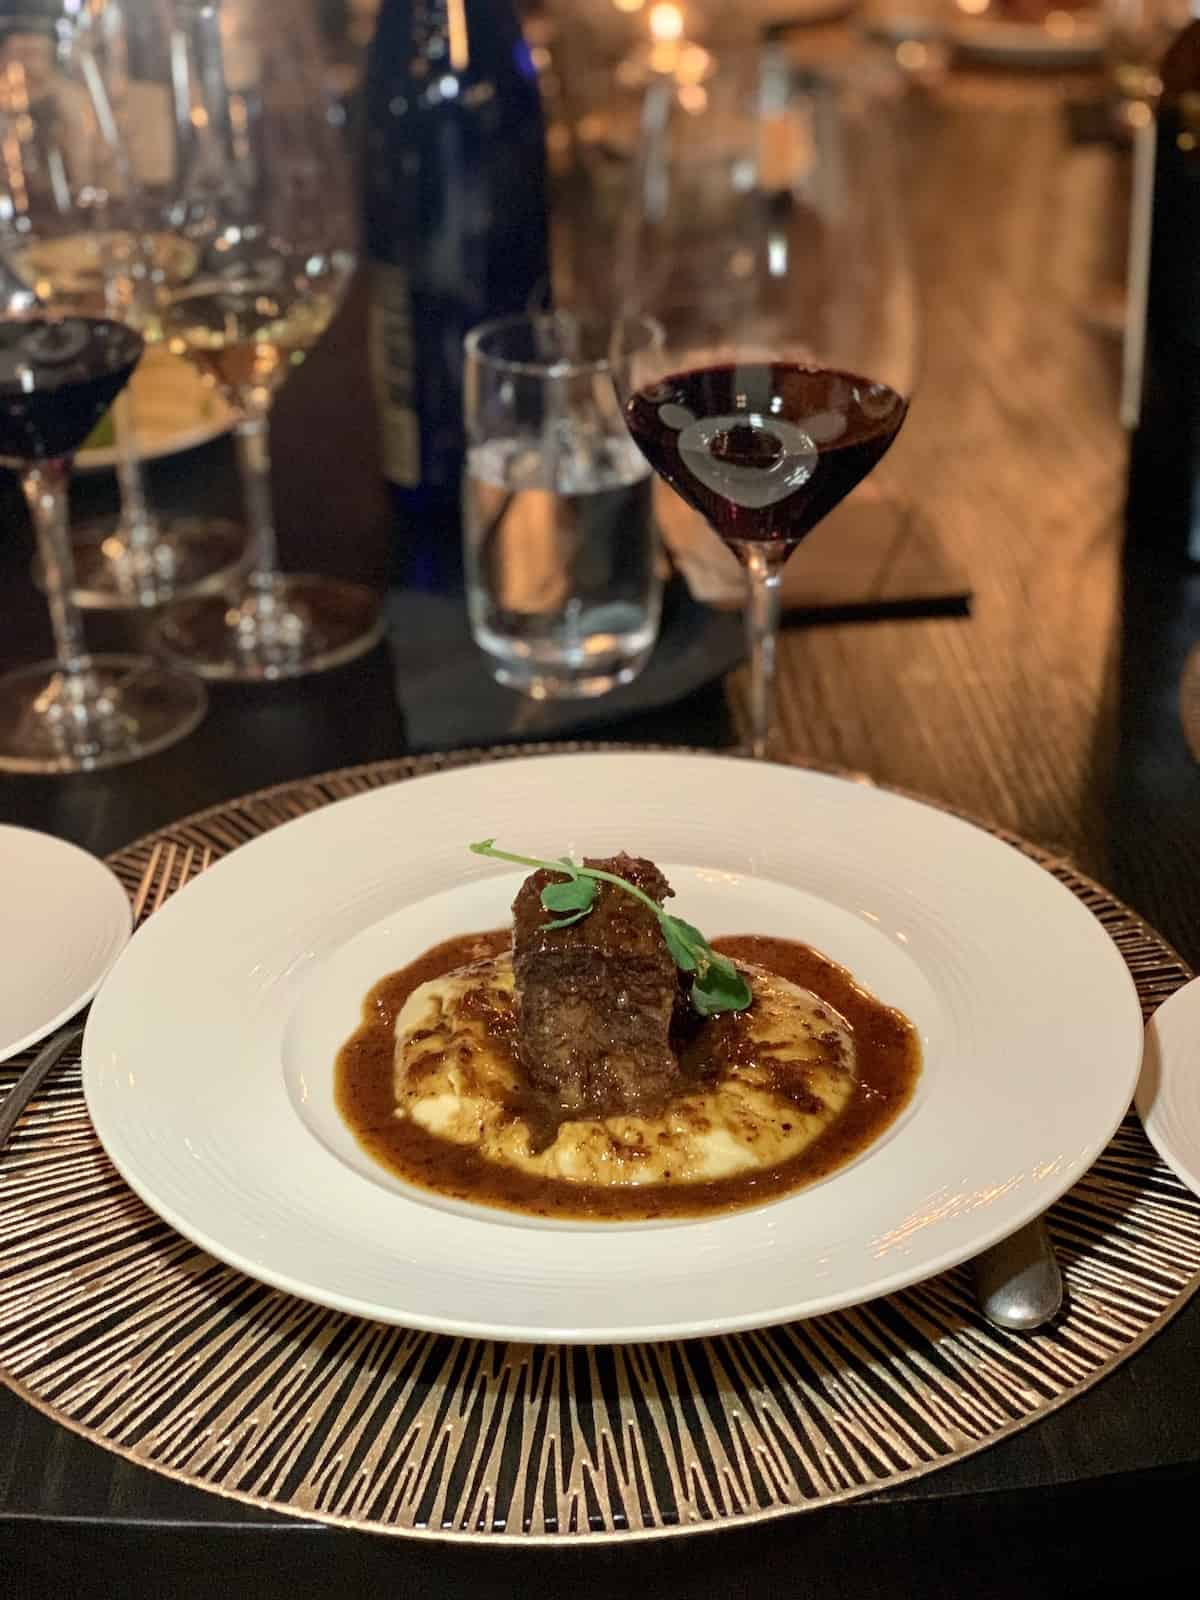 Short rib over mashed potatoes with gravy.